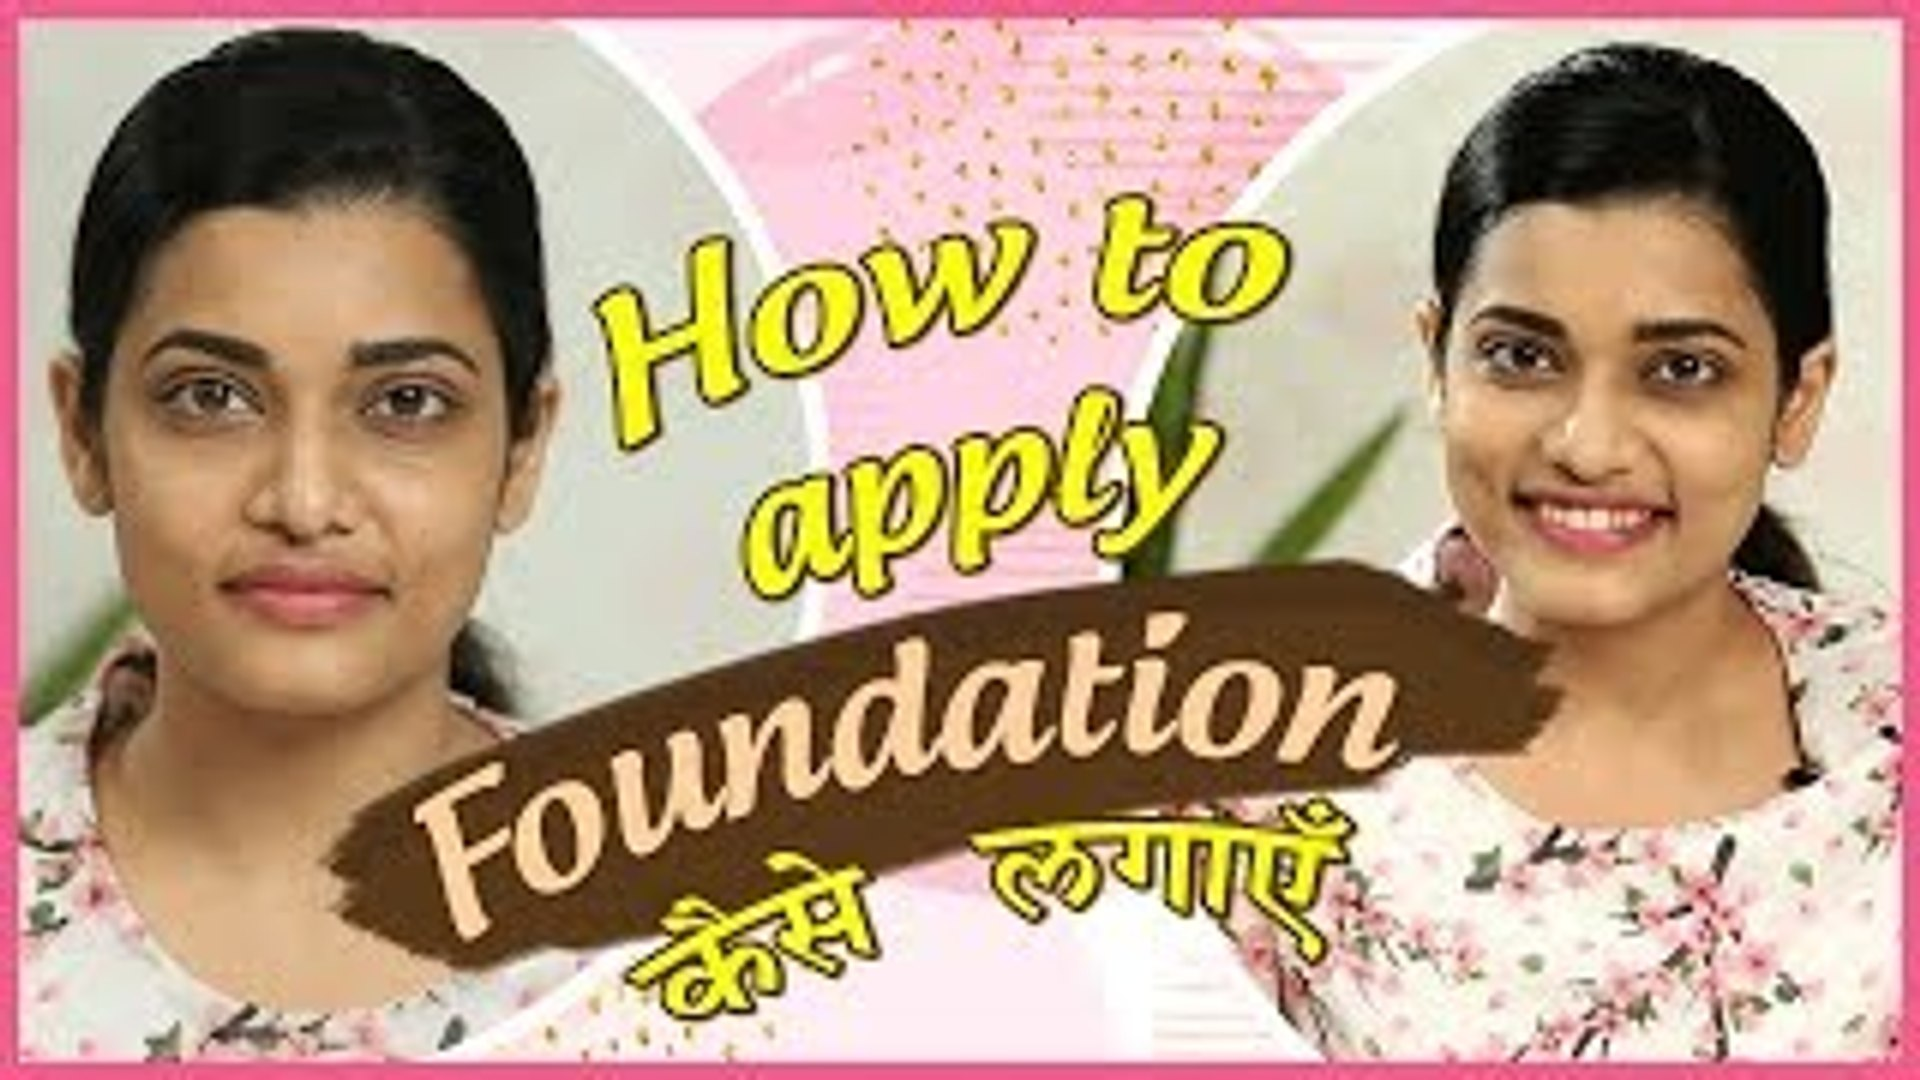 How To Apply Foundation | Beauty Video In Hindi | Foundation कैसे लगाएं | Beginners Video